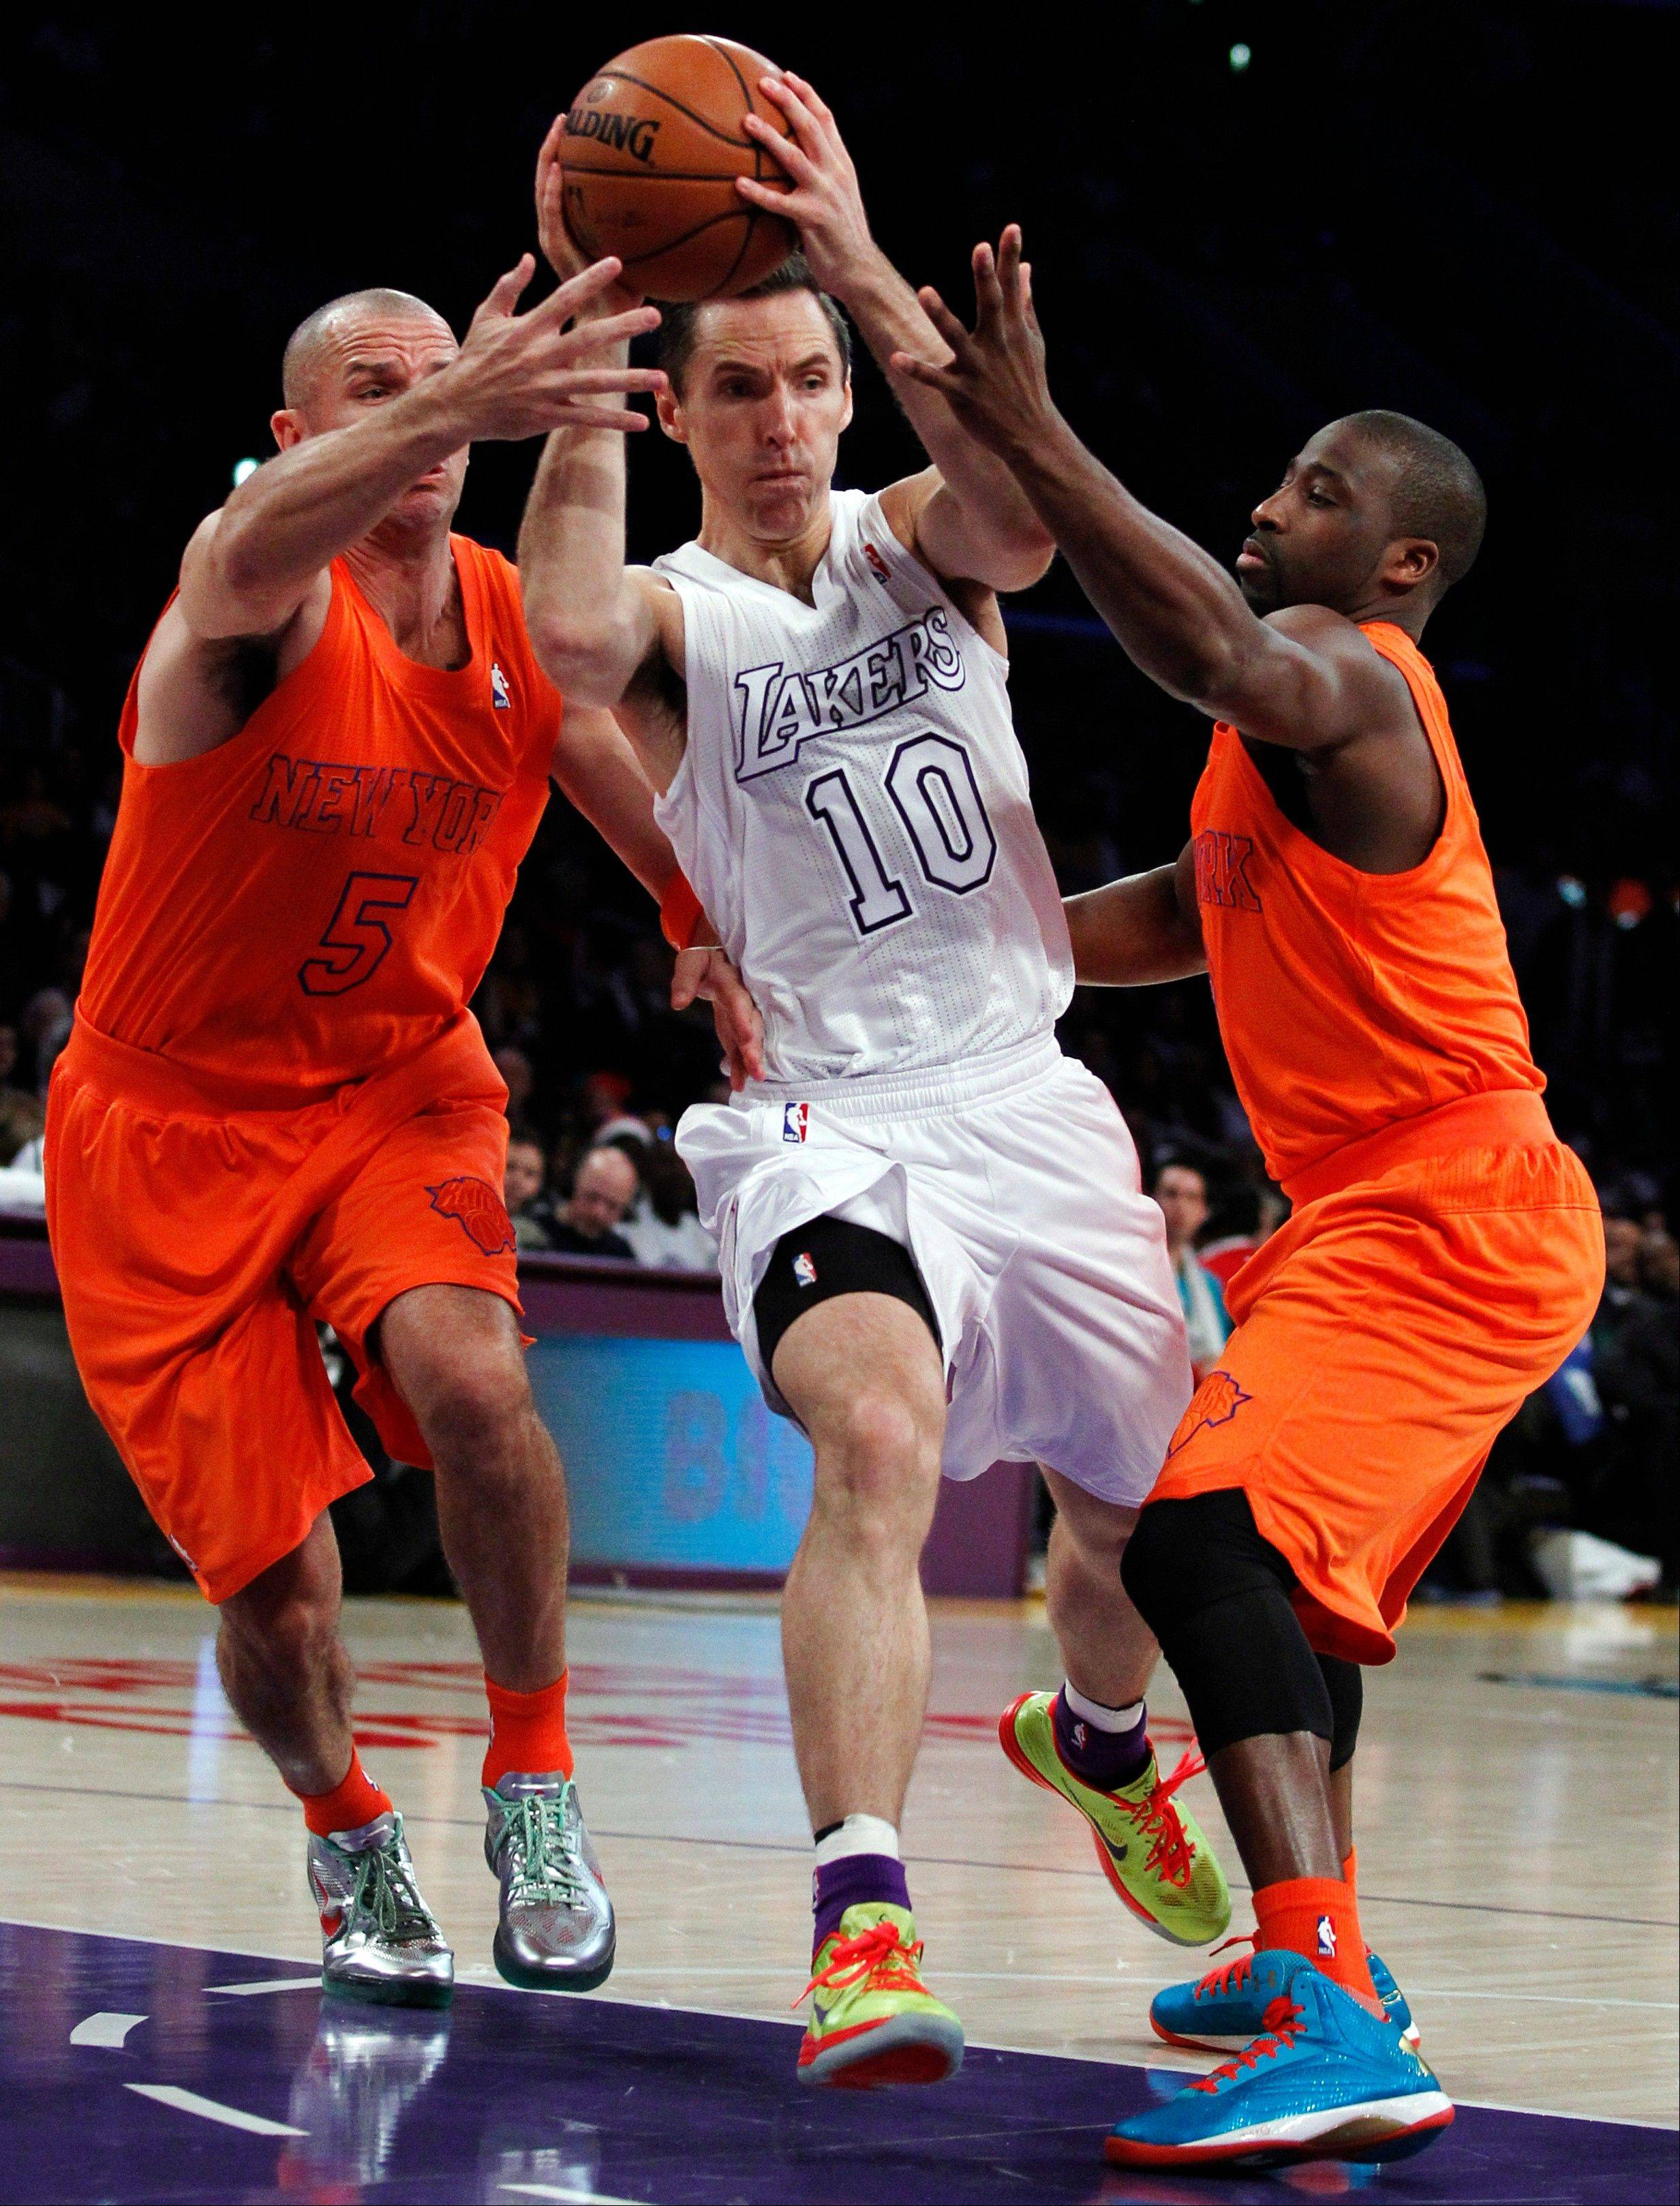 Los Angeles Lakers guard Steve Nash drives between New York Knicks guards Jason Kidd (5) and Raymond Felton (2) Tuesday during the first half in Los Angeles.